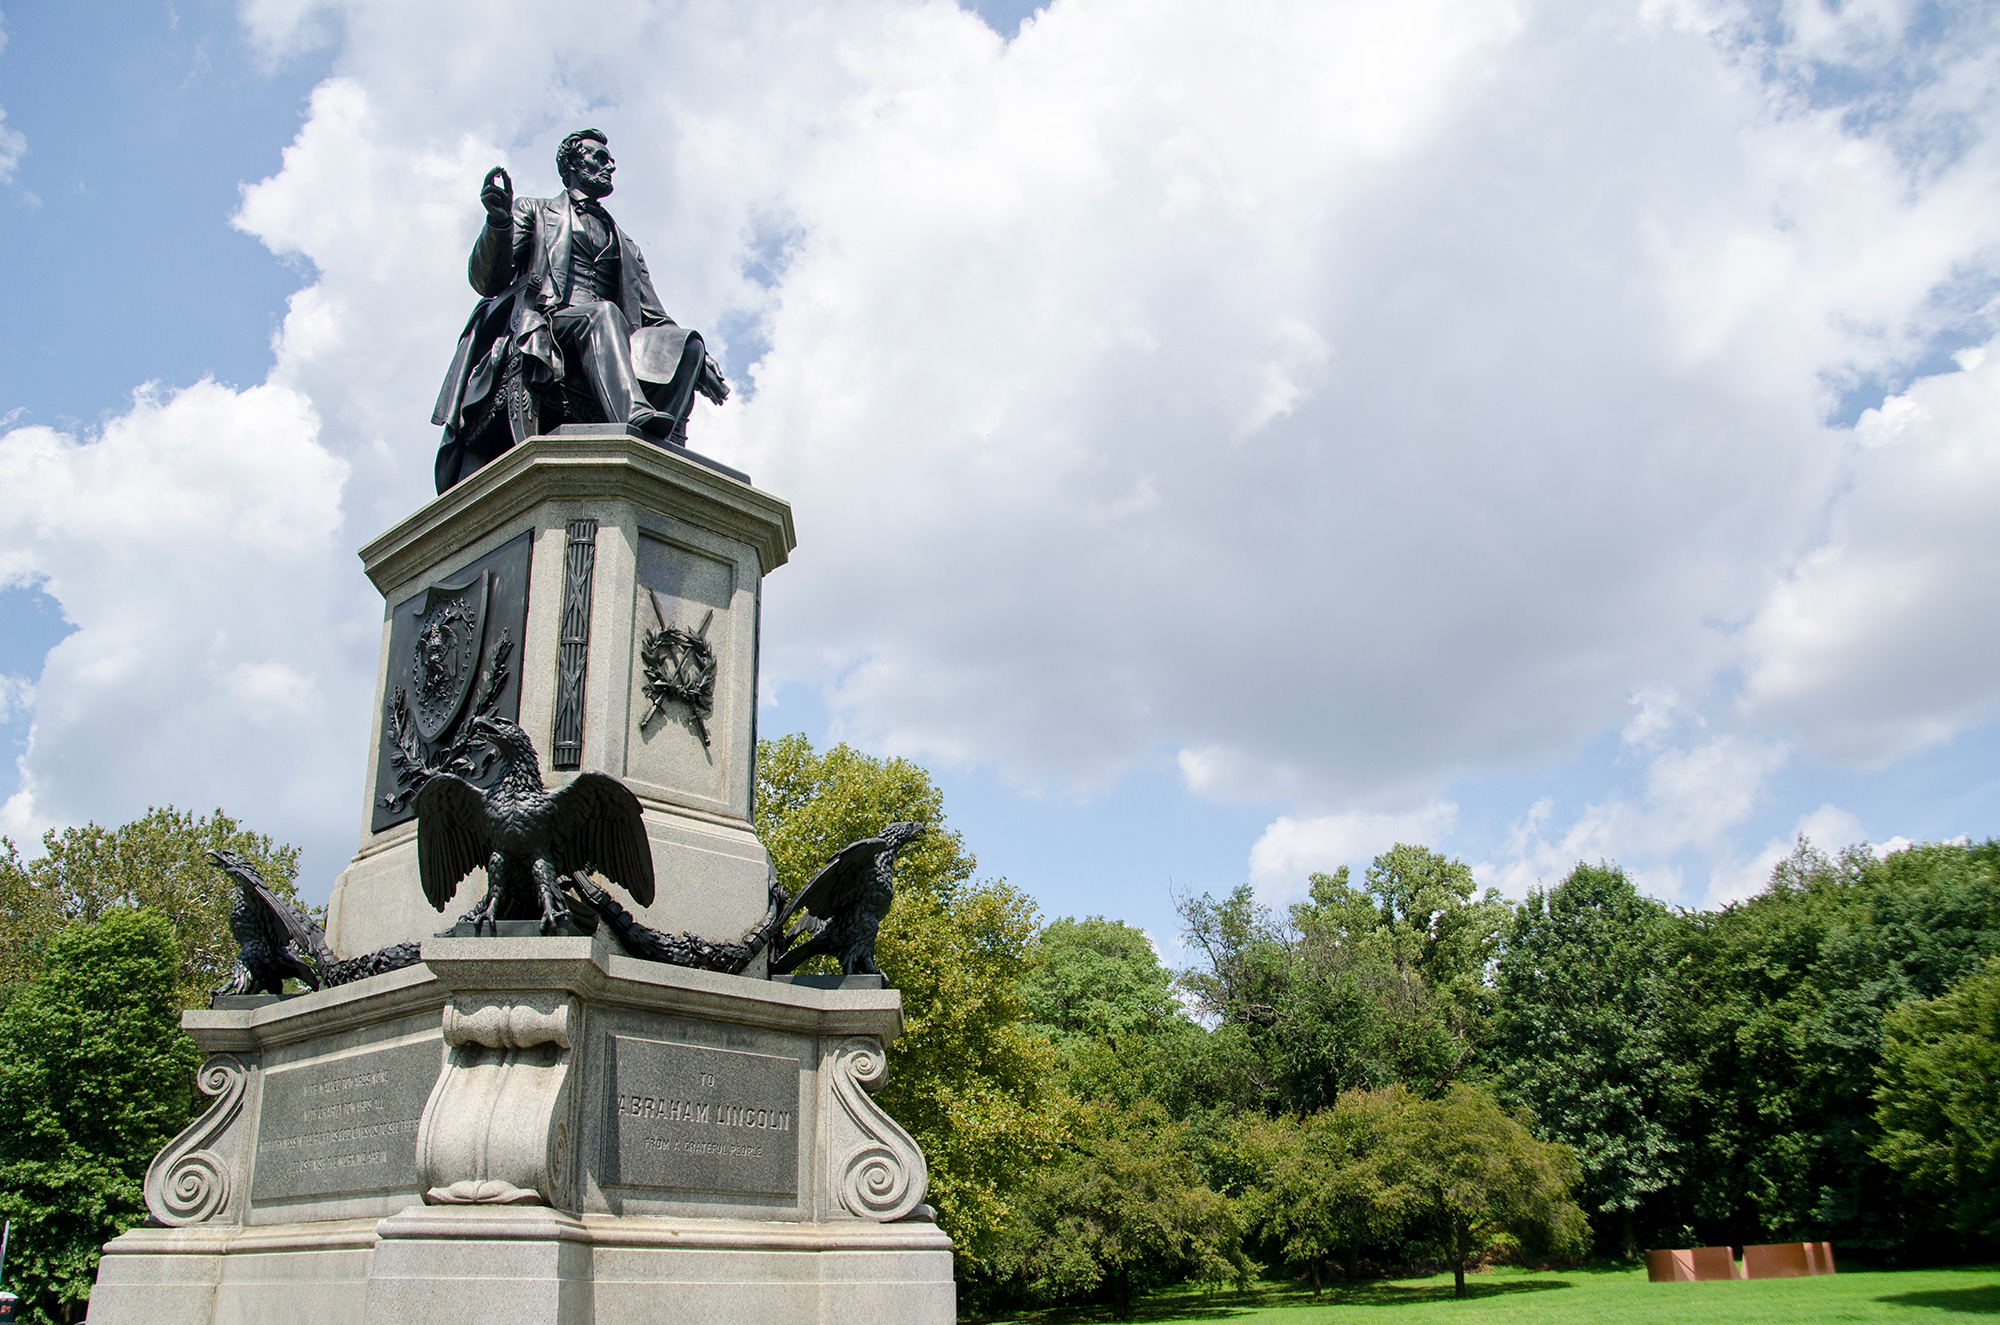 Statue of Abraham Lincoln in Fairmount Park